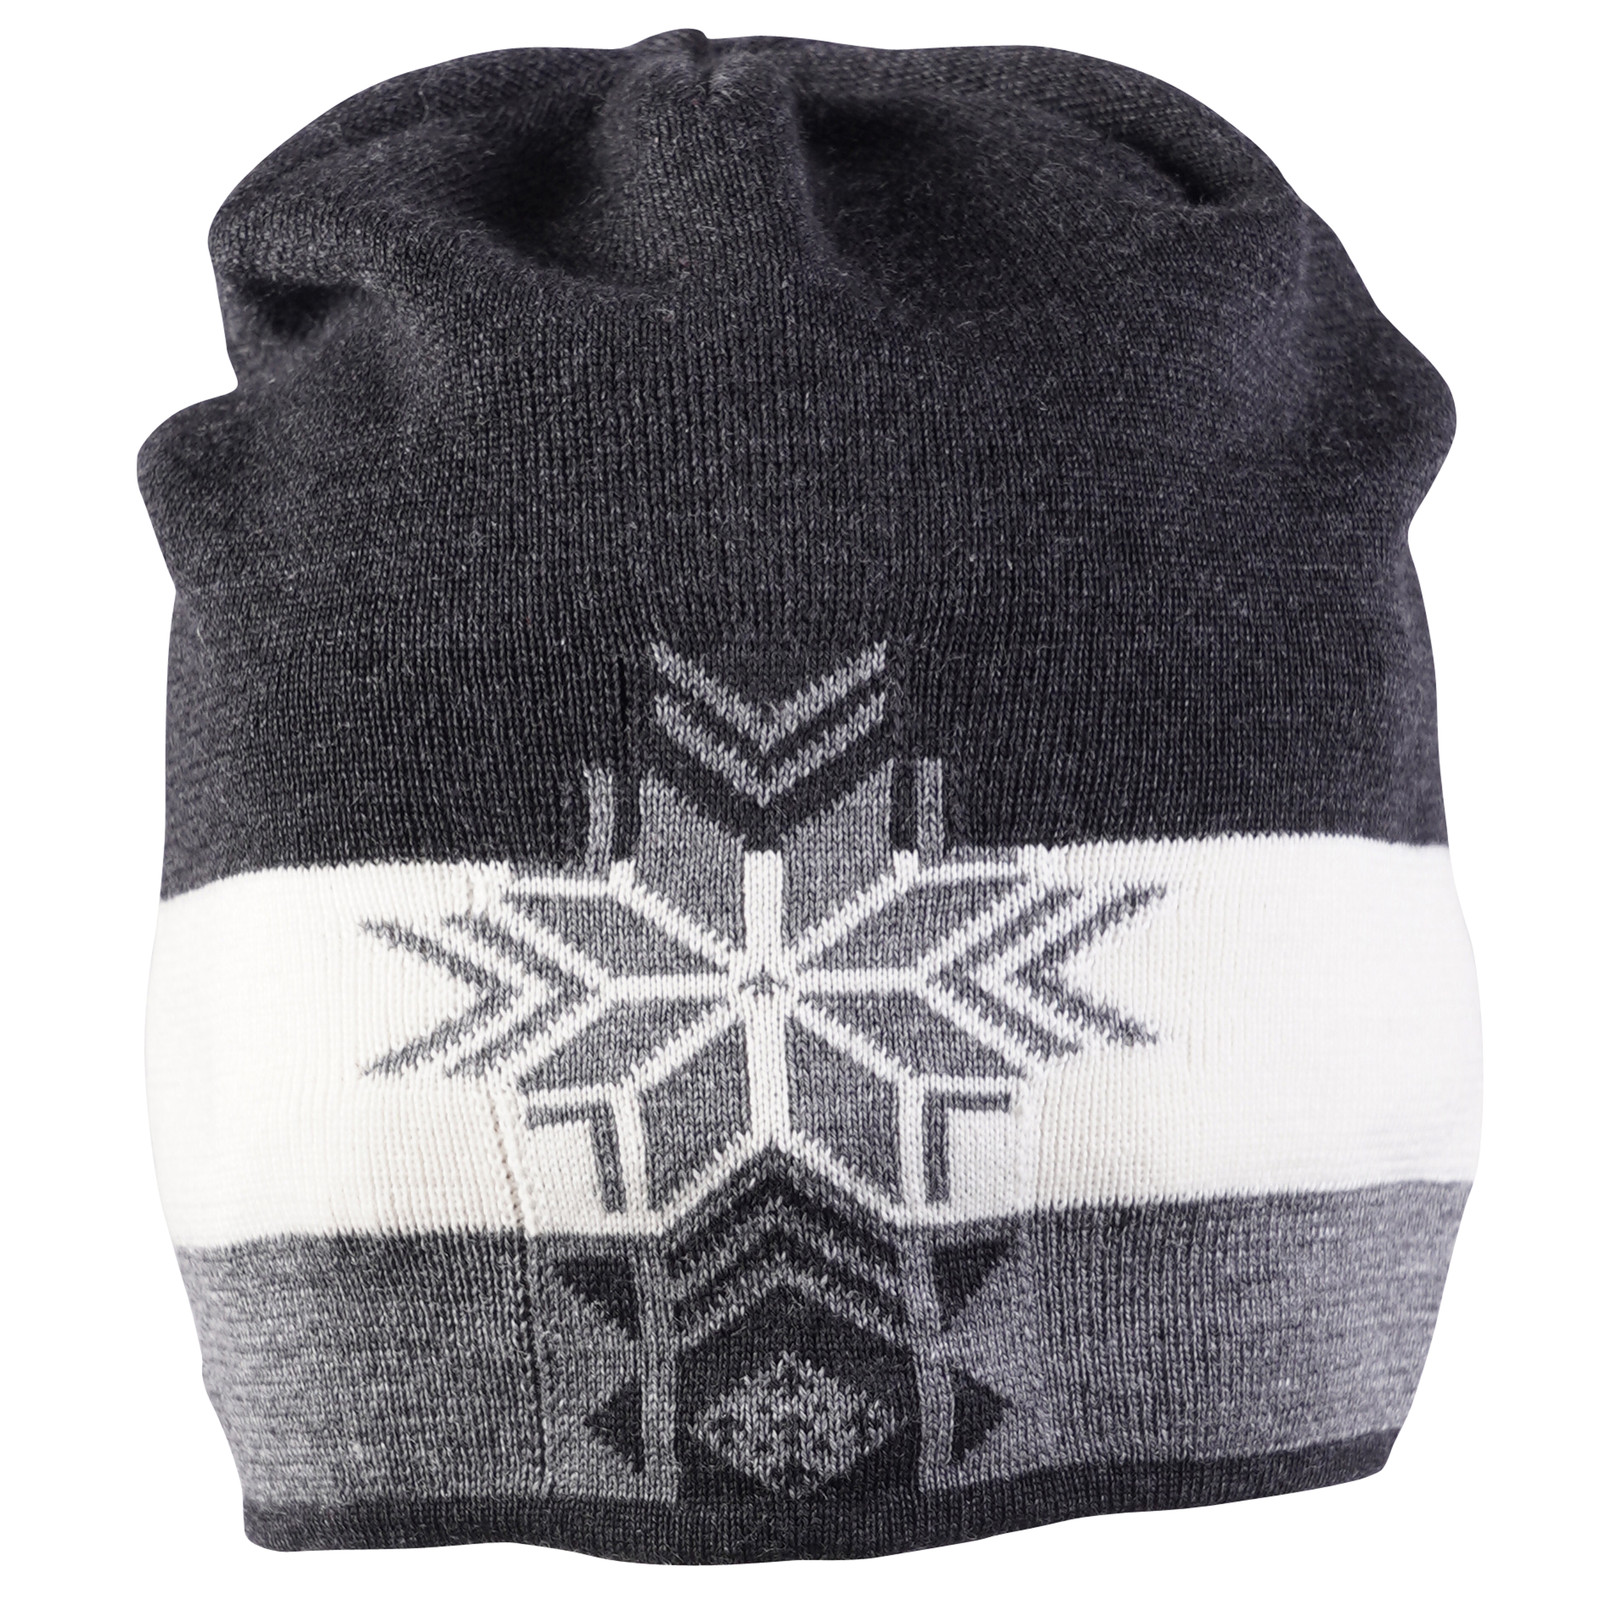 Front view of Dale of Norway Geilolia Hat - Dark Charcoal/Smoke/Off White, 48261-E